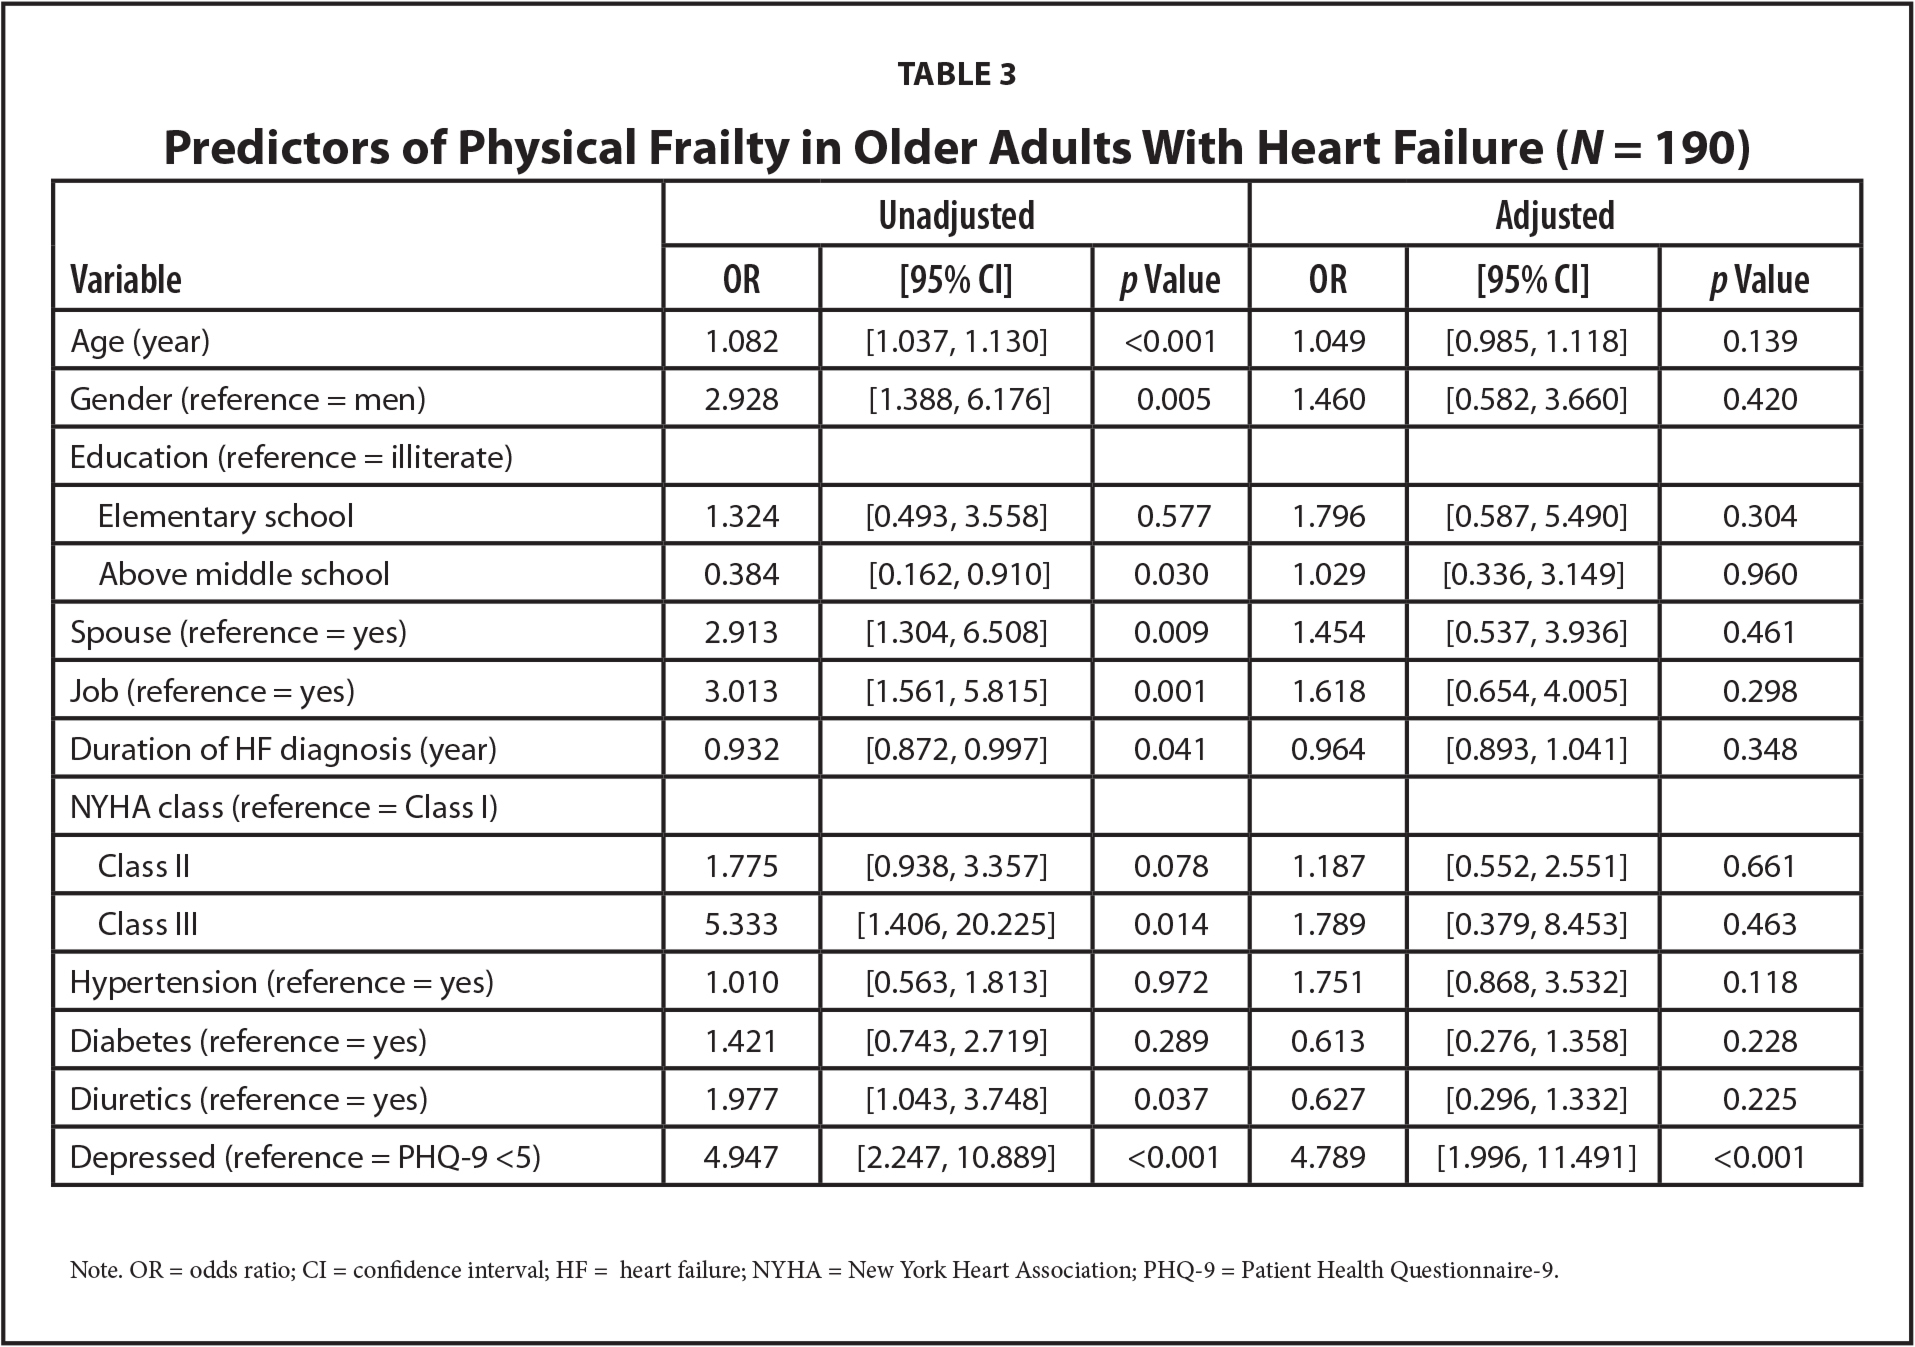 Predictors of Physical Frailty in Older Adults With Heart Failure (N = 190)